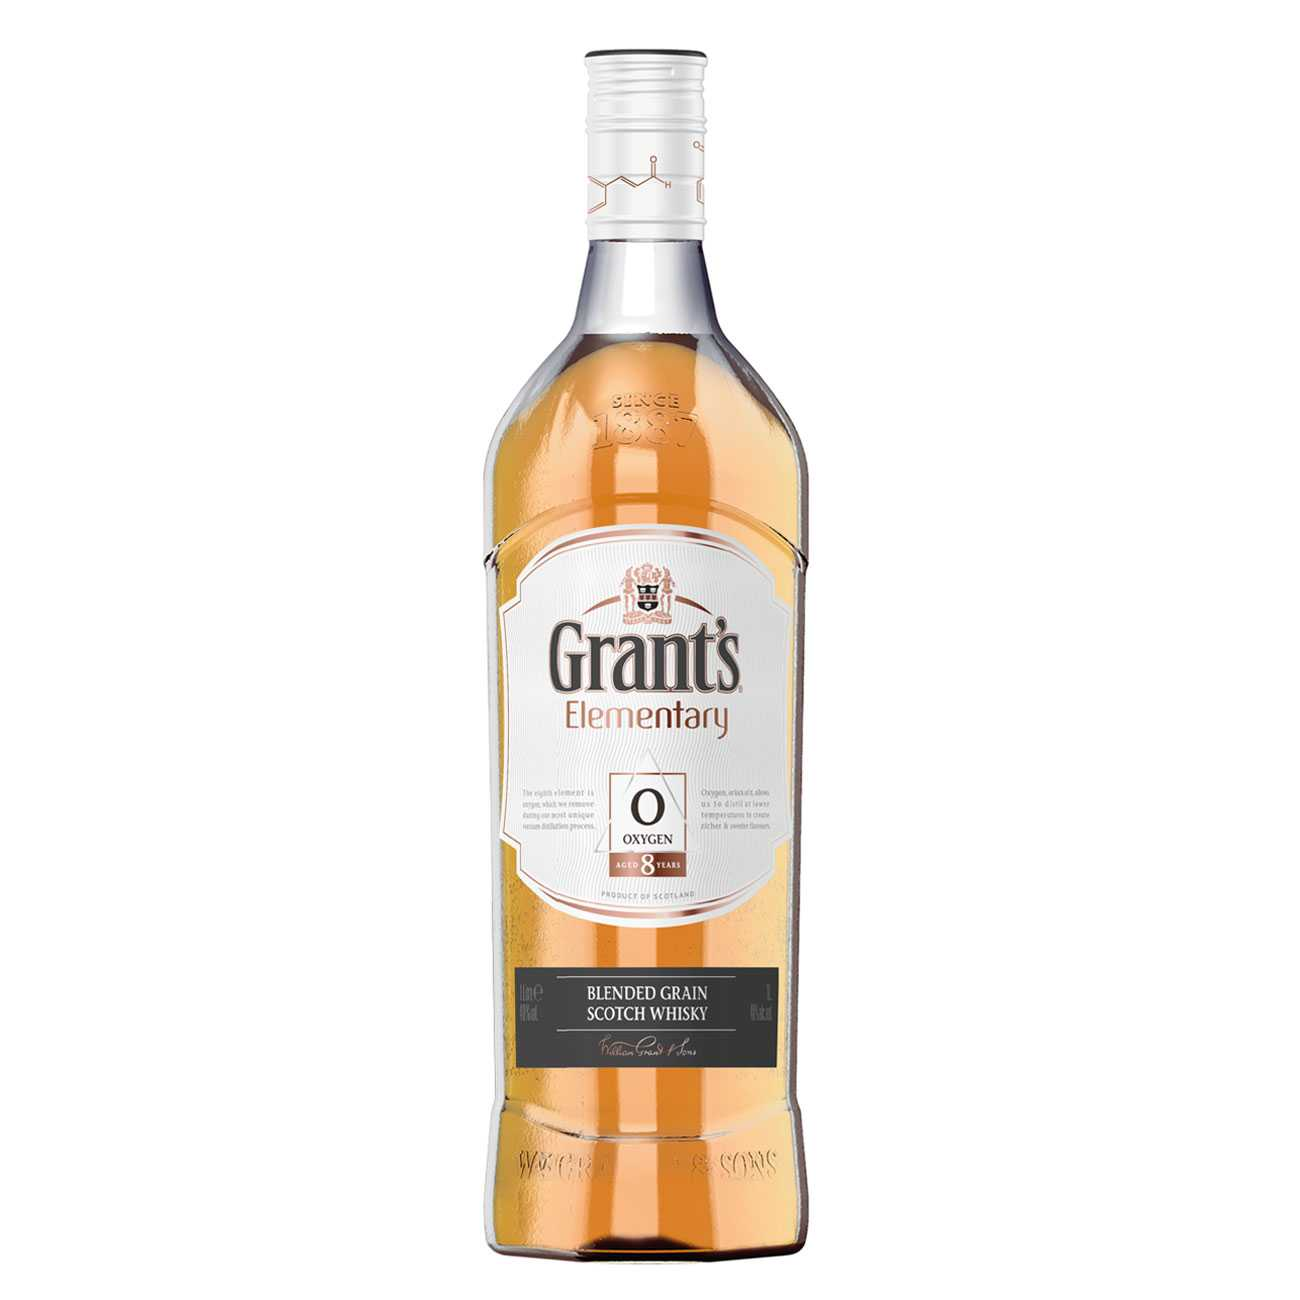 Whisky scotian, OXYGEN 8 YEARS 1000 ML, Grant's